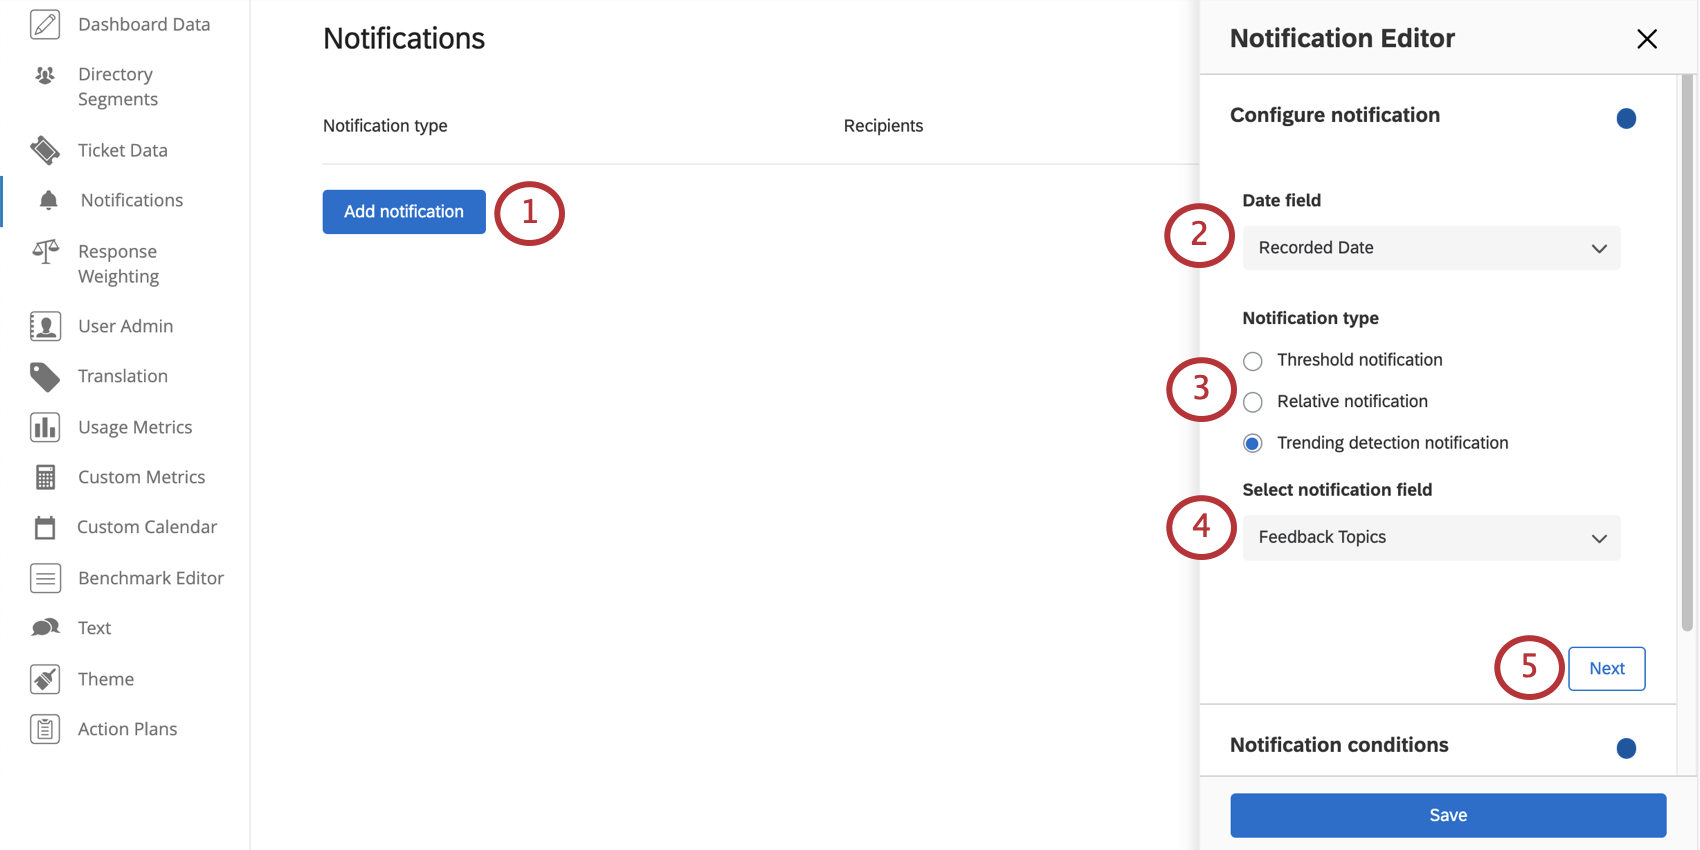 Add notification button, blue, left middle of screen. The monitor customizer opens to right and has the fields described, but the type of notification is listed below the field you are selecting